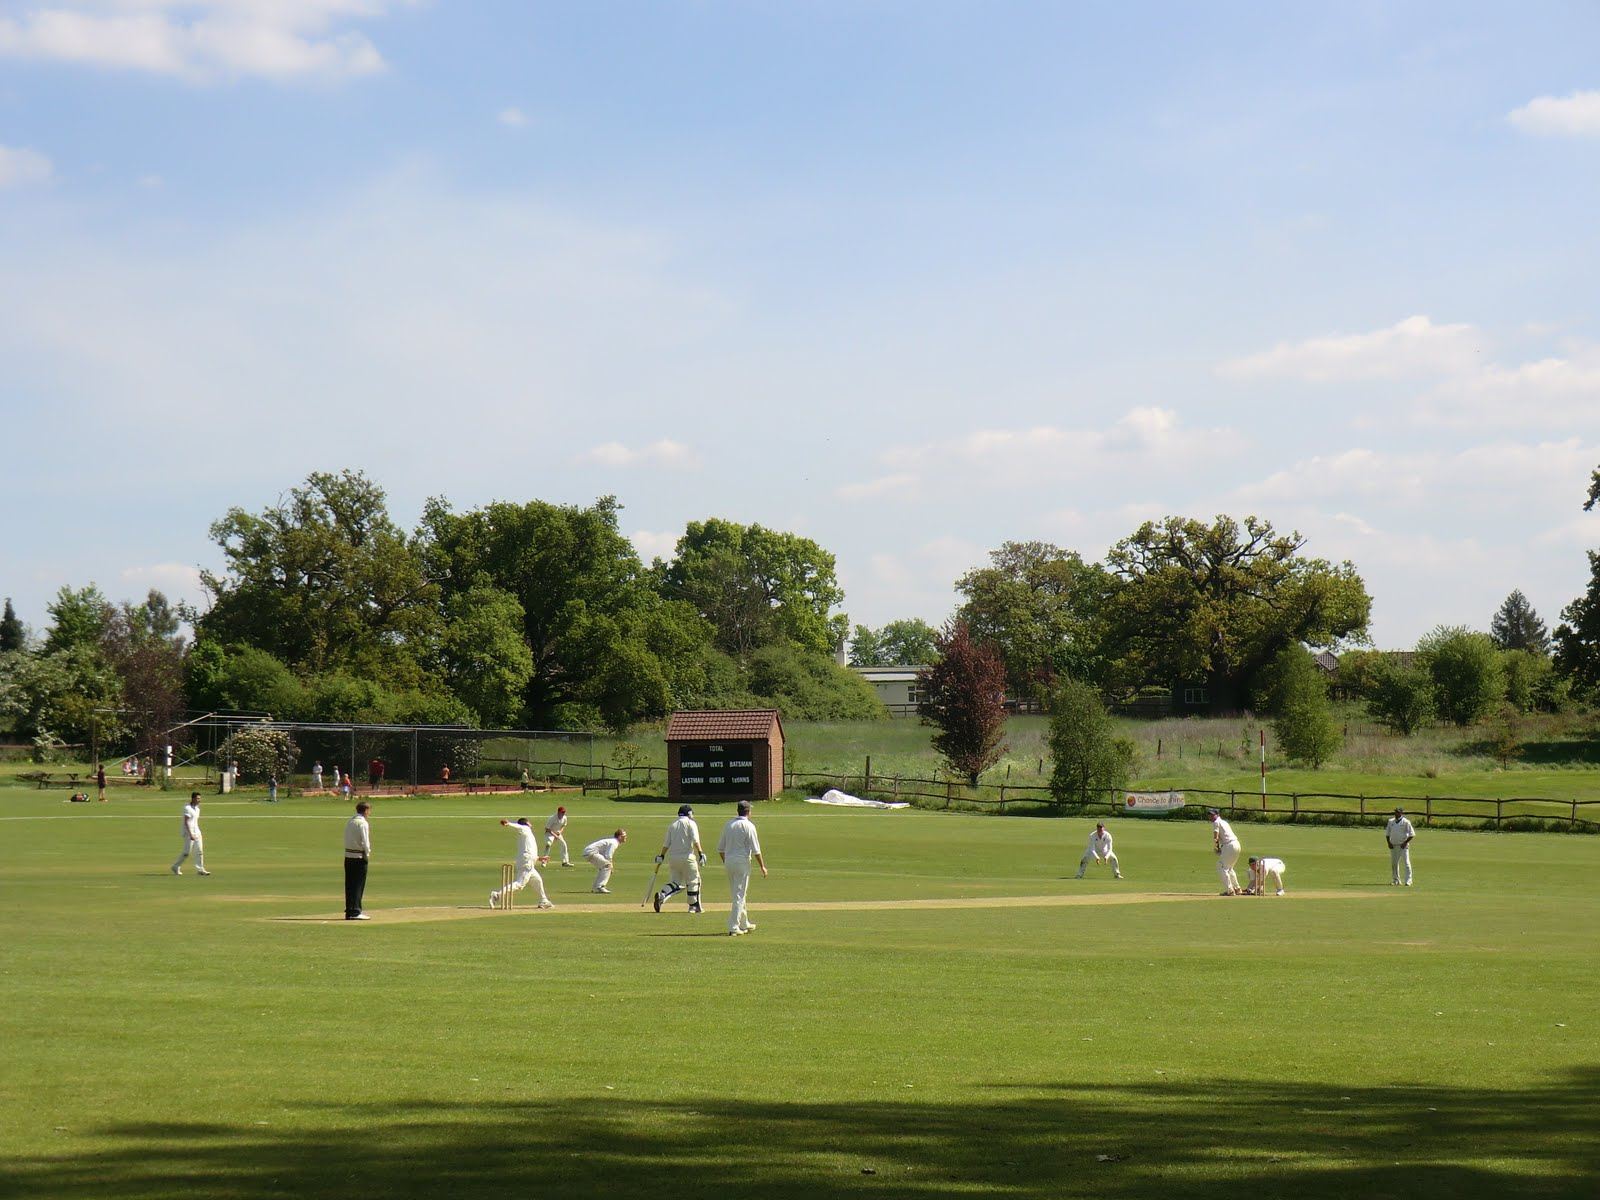 CIMG6822 Merstham Cricket Club